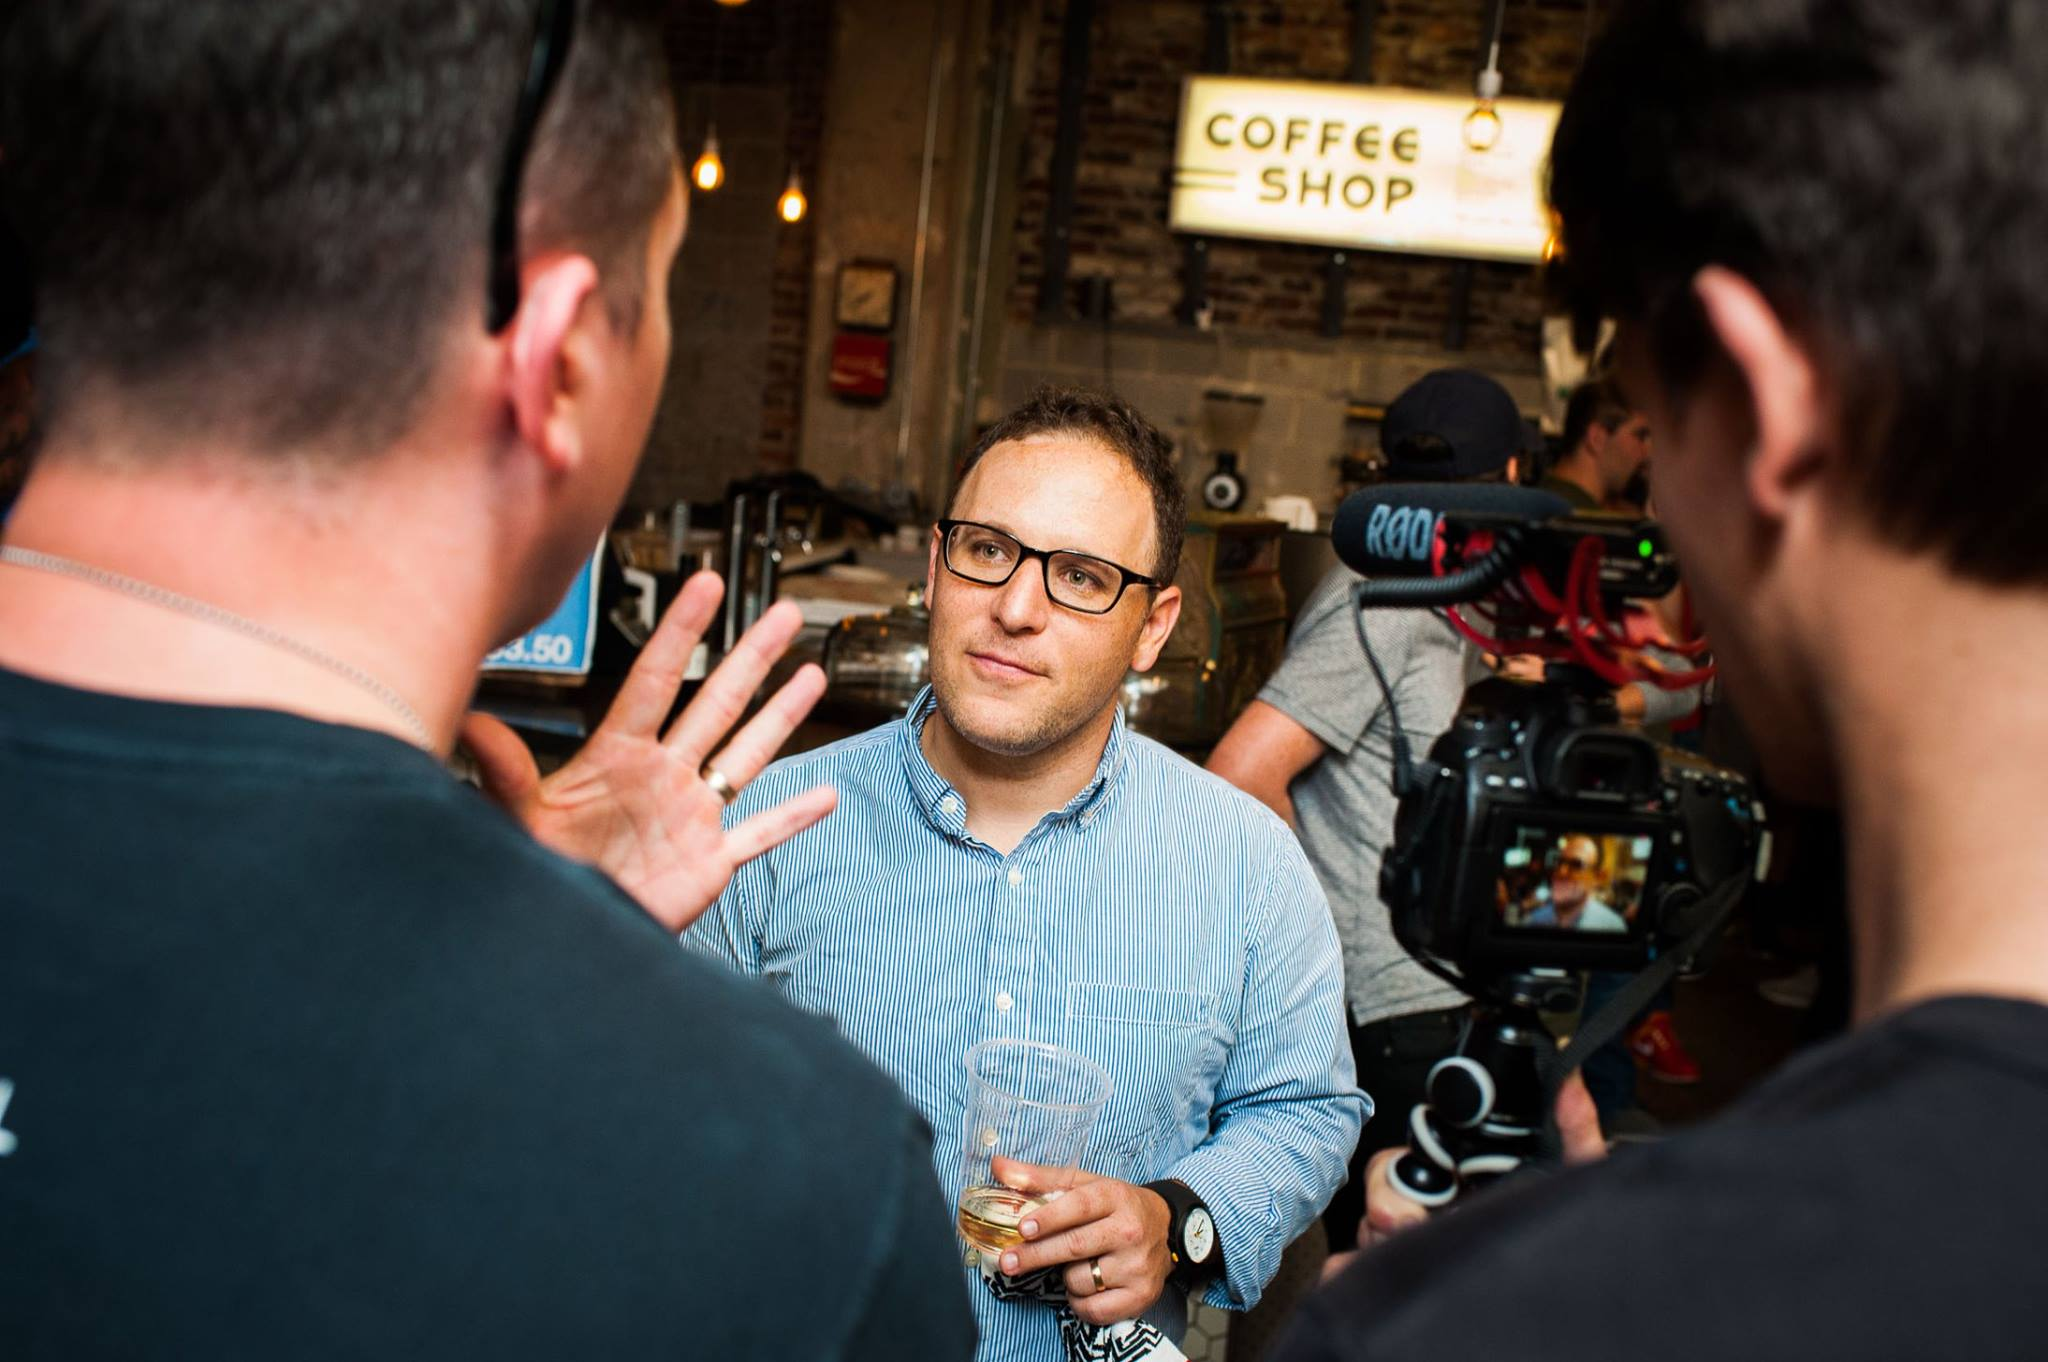 Coffee, beer, pitches, wings, and words of wisdom from founders.  The best of everything! |PHOTO: Jason Seagle